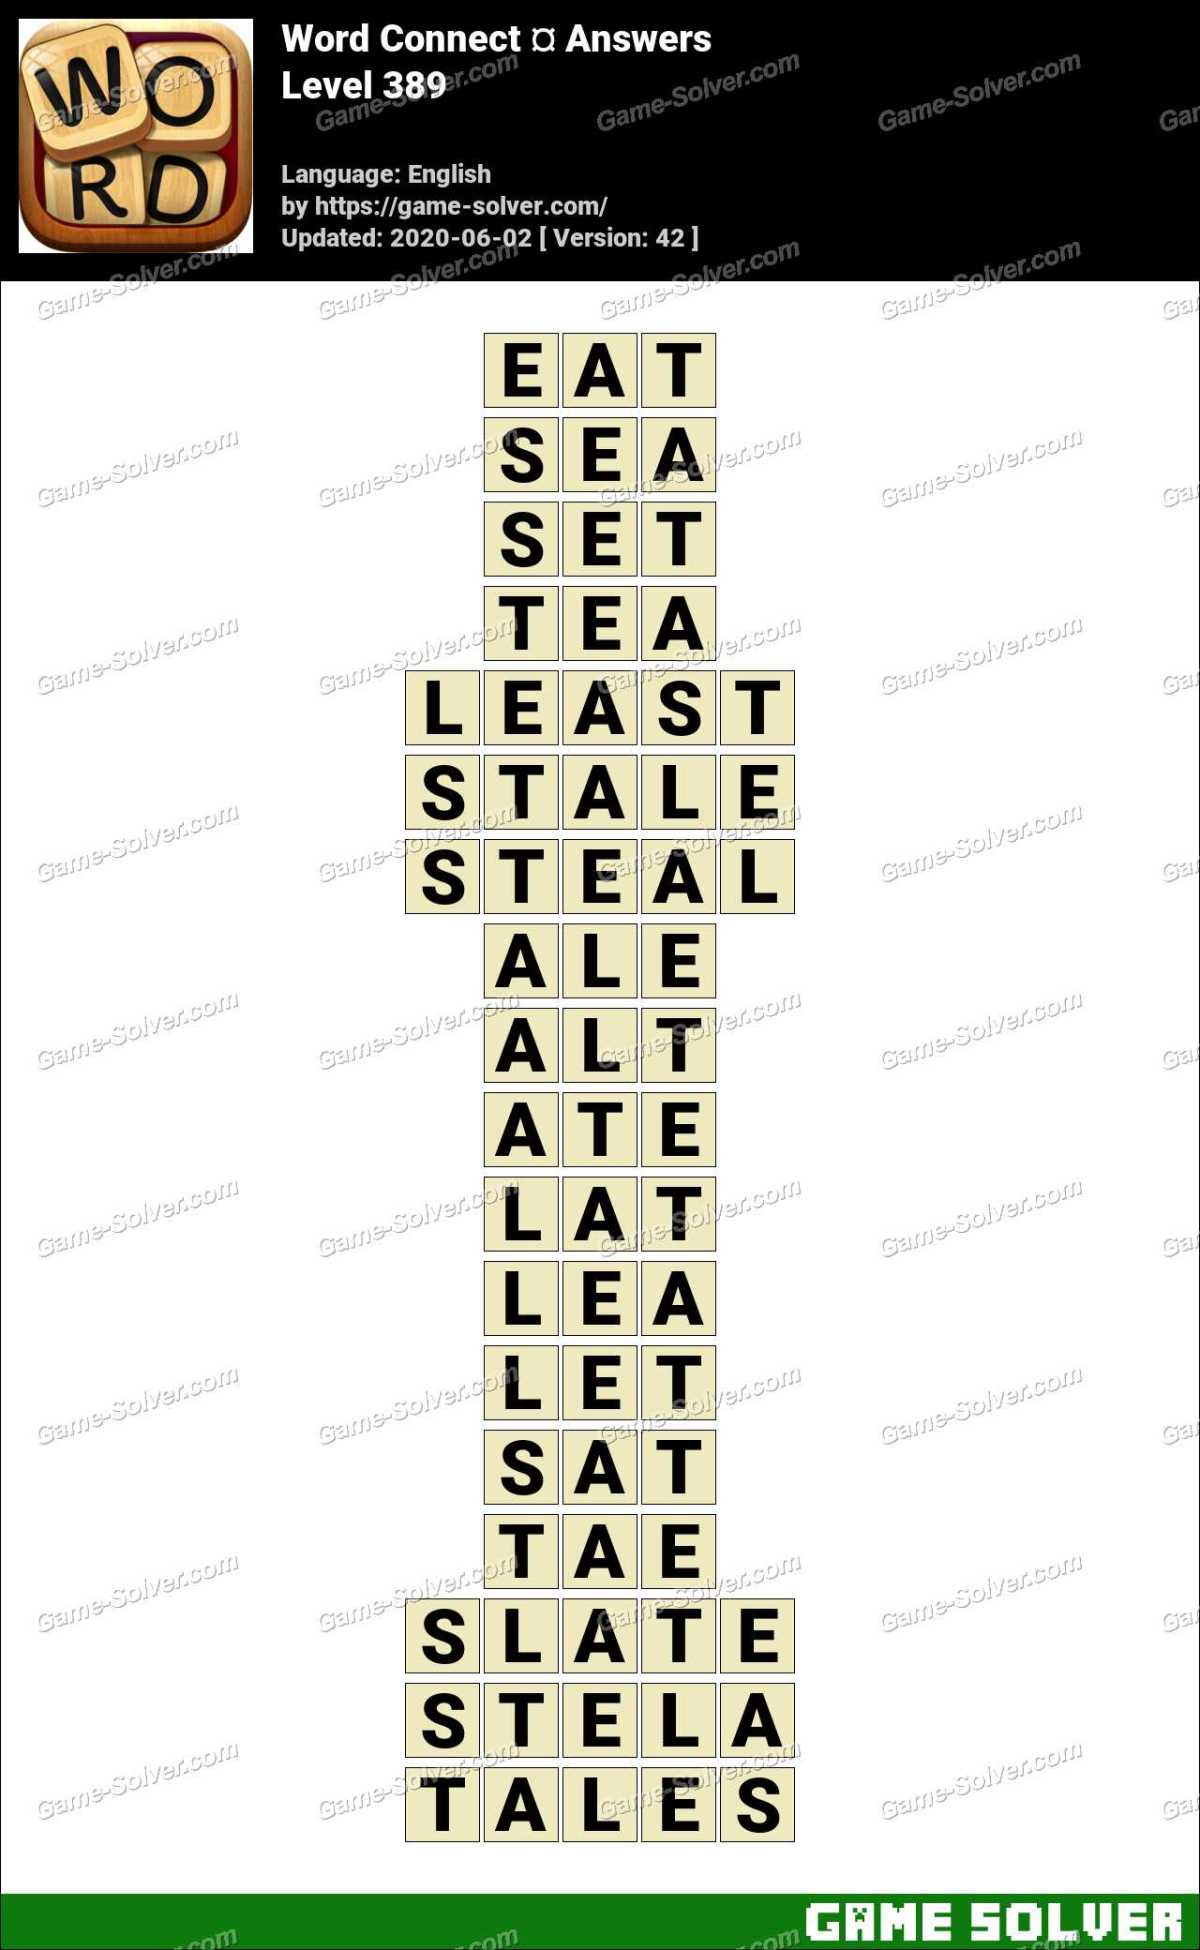 Word Connect Level 389 Answers